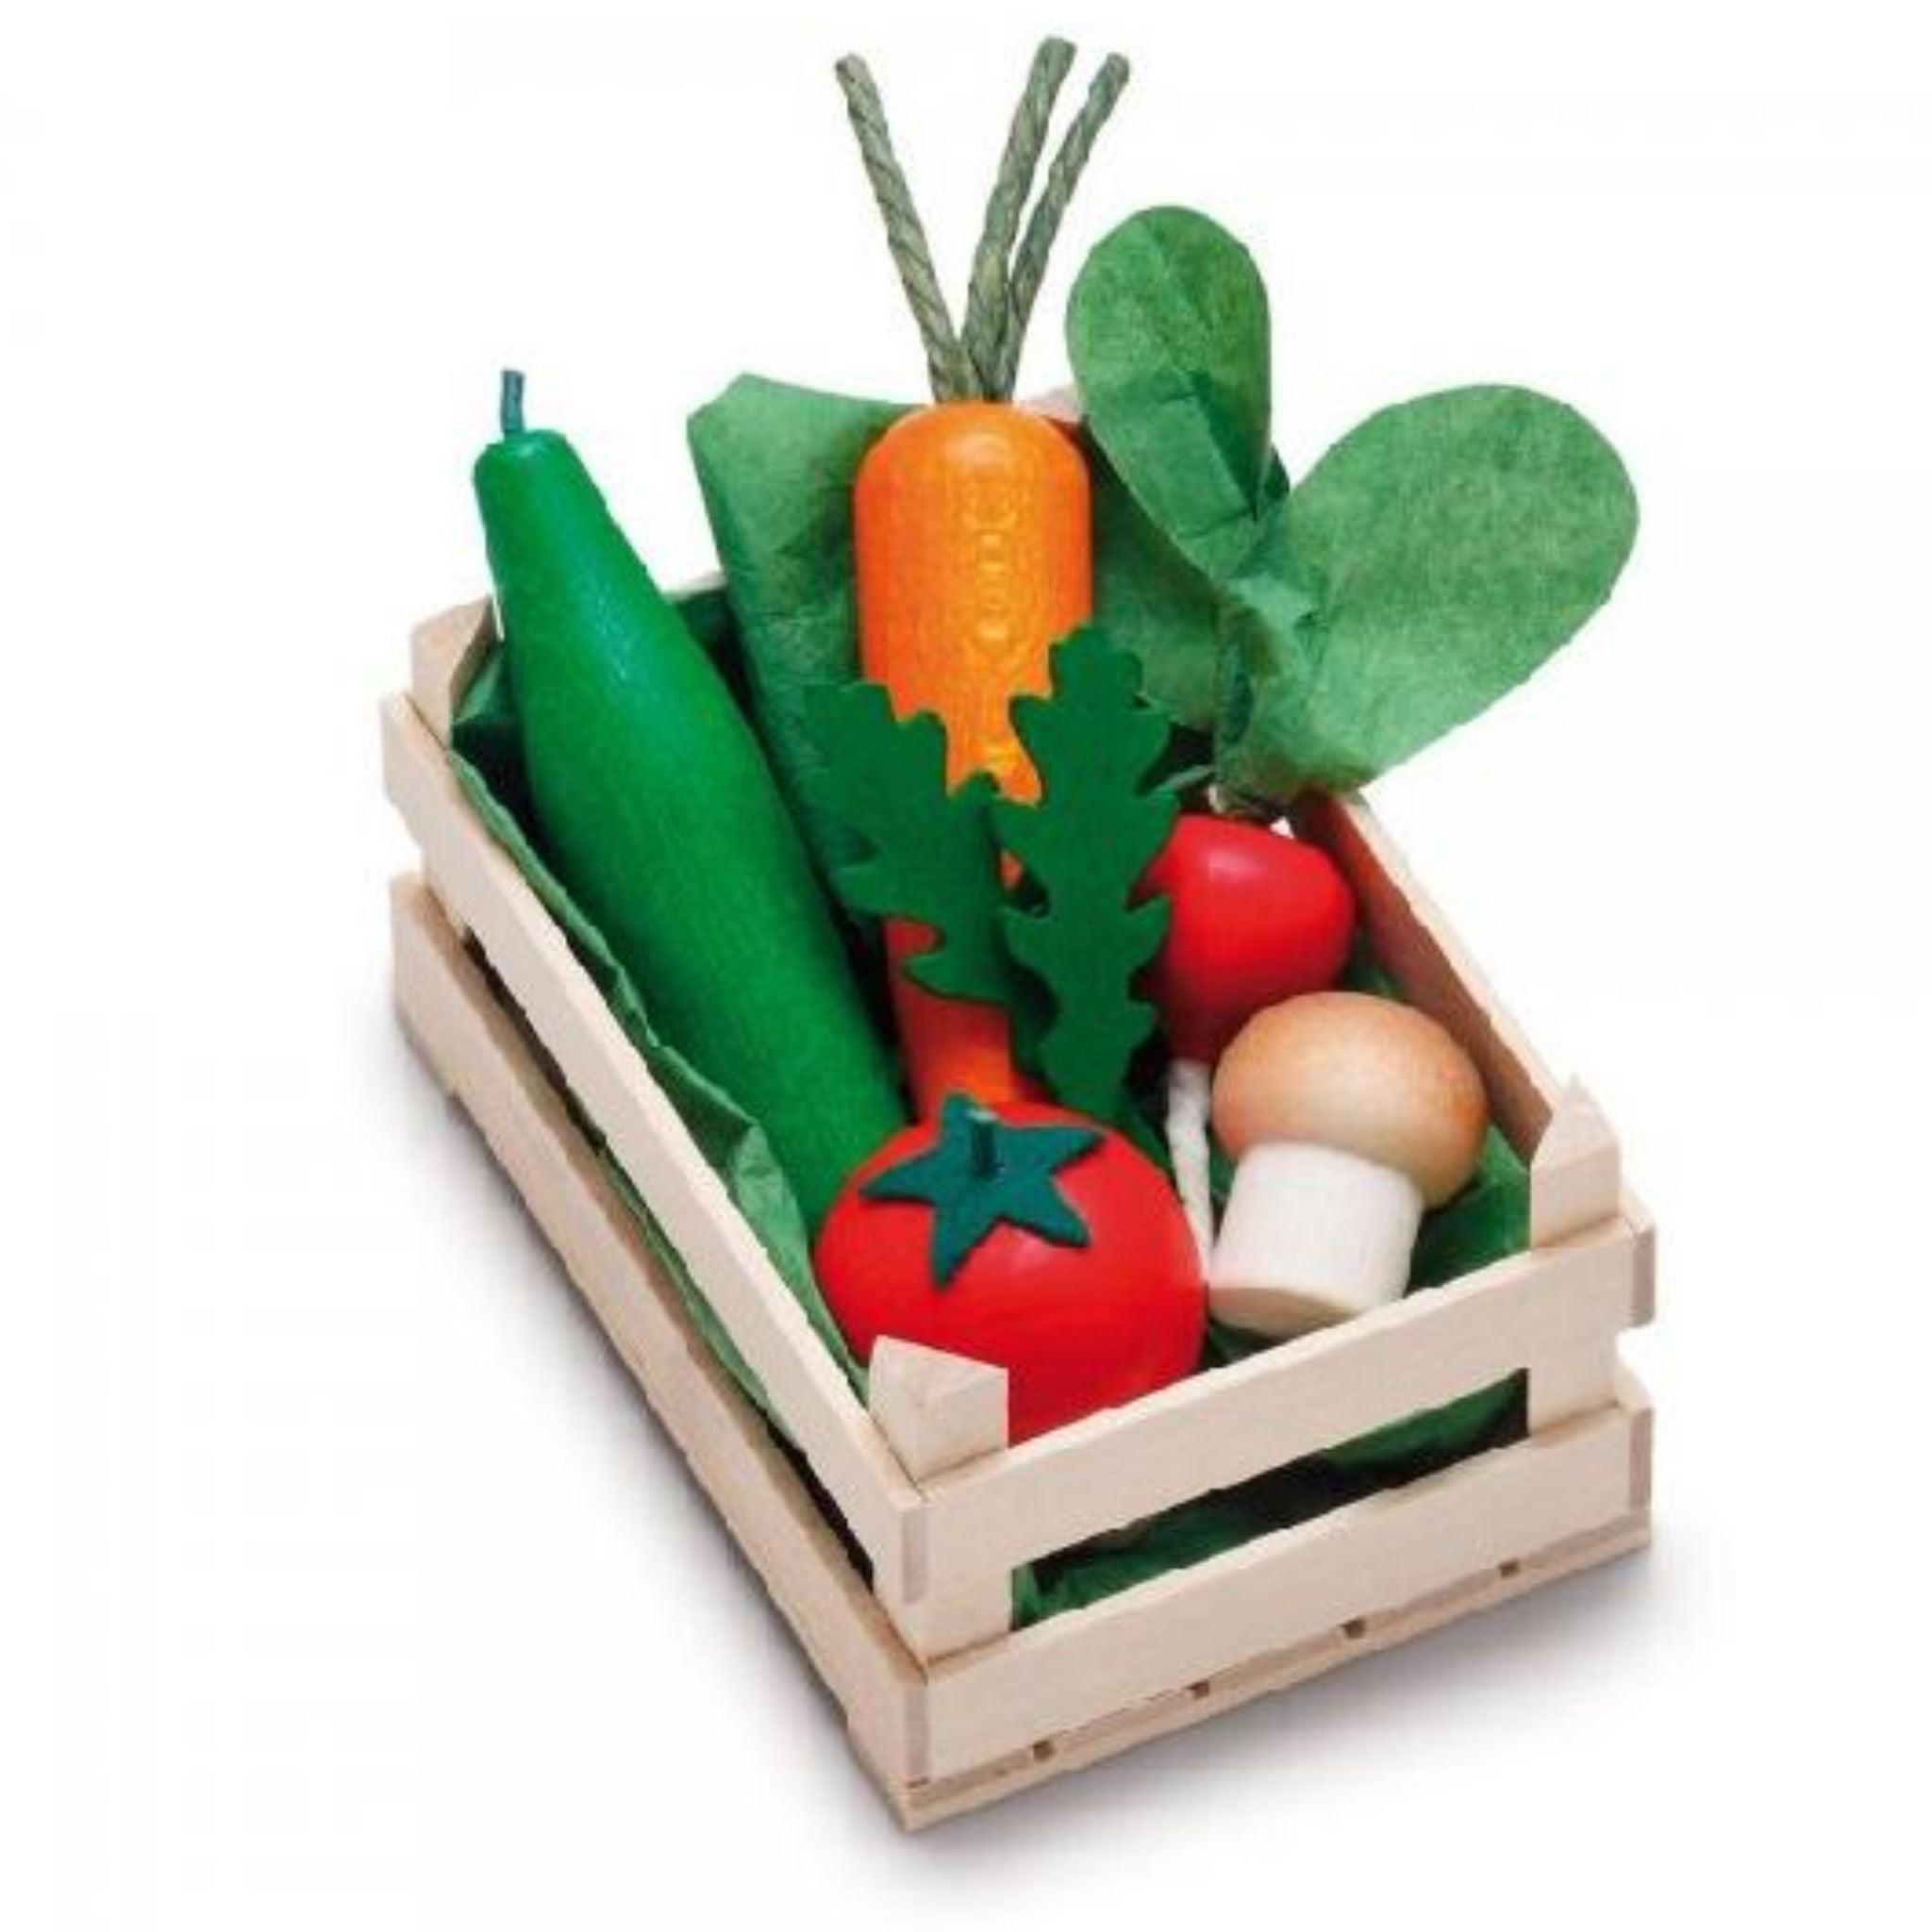 Assorted Wooden Vegetables in Crate  -Go Green Baby